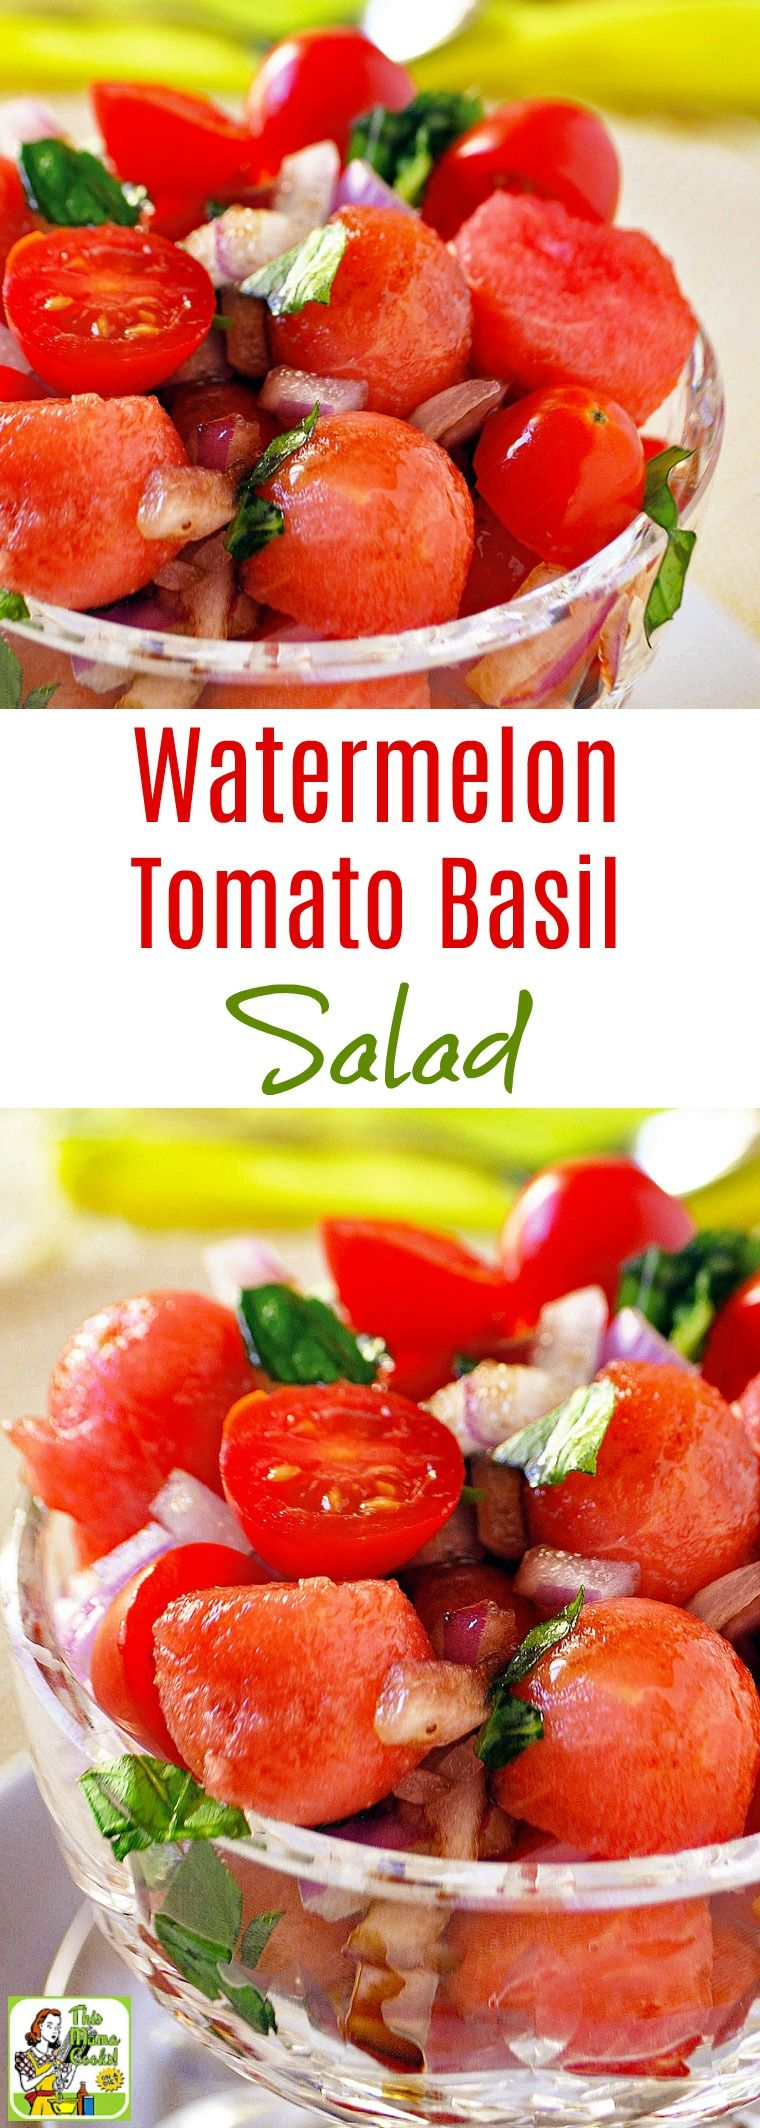 This Easy Watermelon Tomato Basil Salad recipe is ideal for summer cookouts or potlucks. Click to get this tomato basil salad recipe flavored with onions and balsamic vinegar is naturally gluten free. This easy to make watermelon and tomato salad is also vegan, vegetarian, dairy free, and can be made in 20 minutes. #melonrecipes